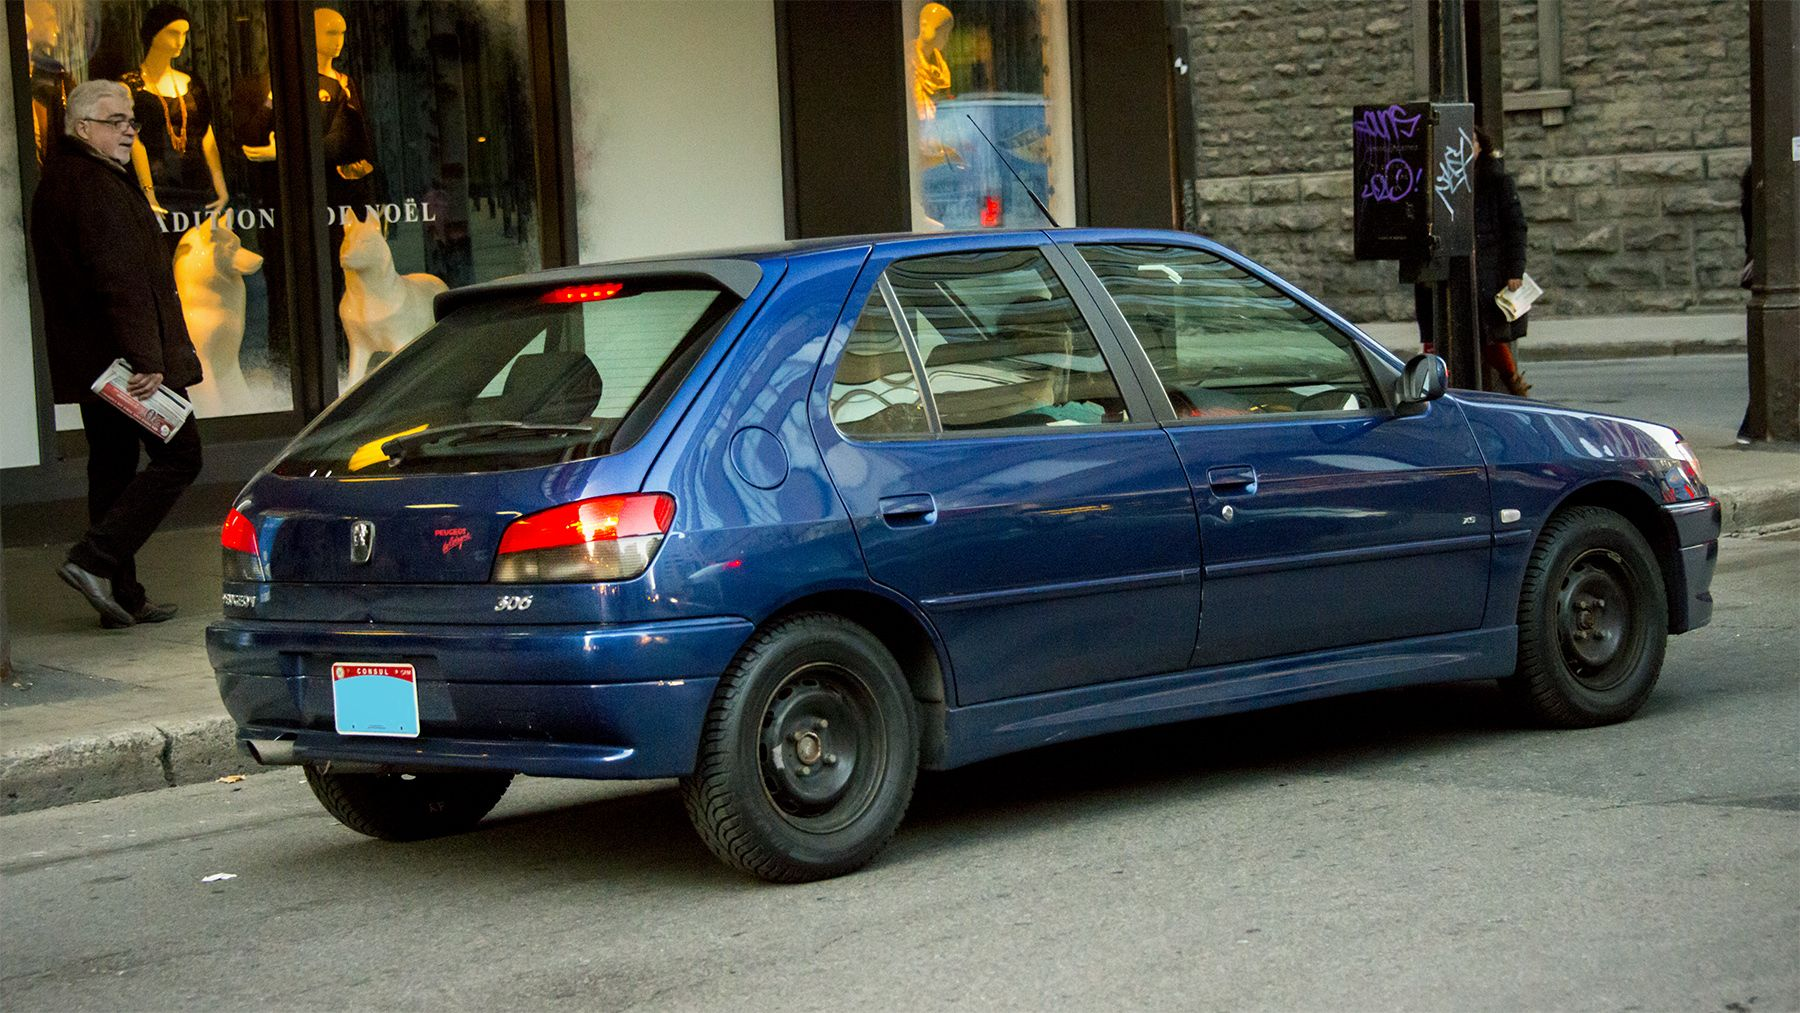 Foreign Hatchback Spotted On The Street Of Montreal Canada Diplomatic Peugeot 306